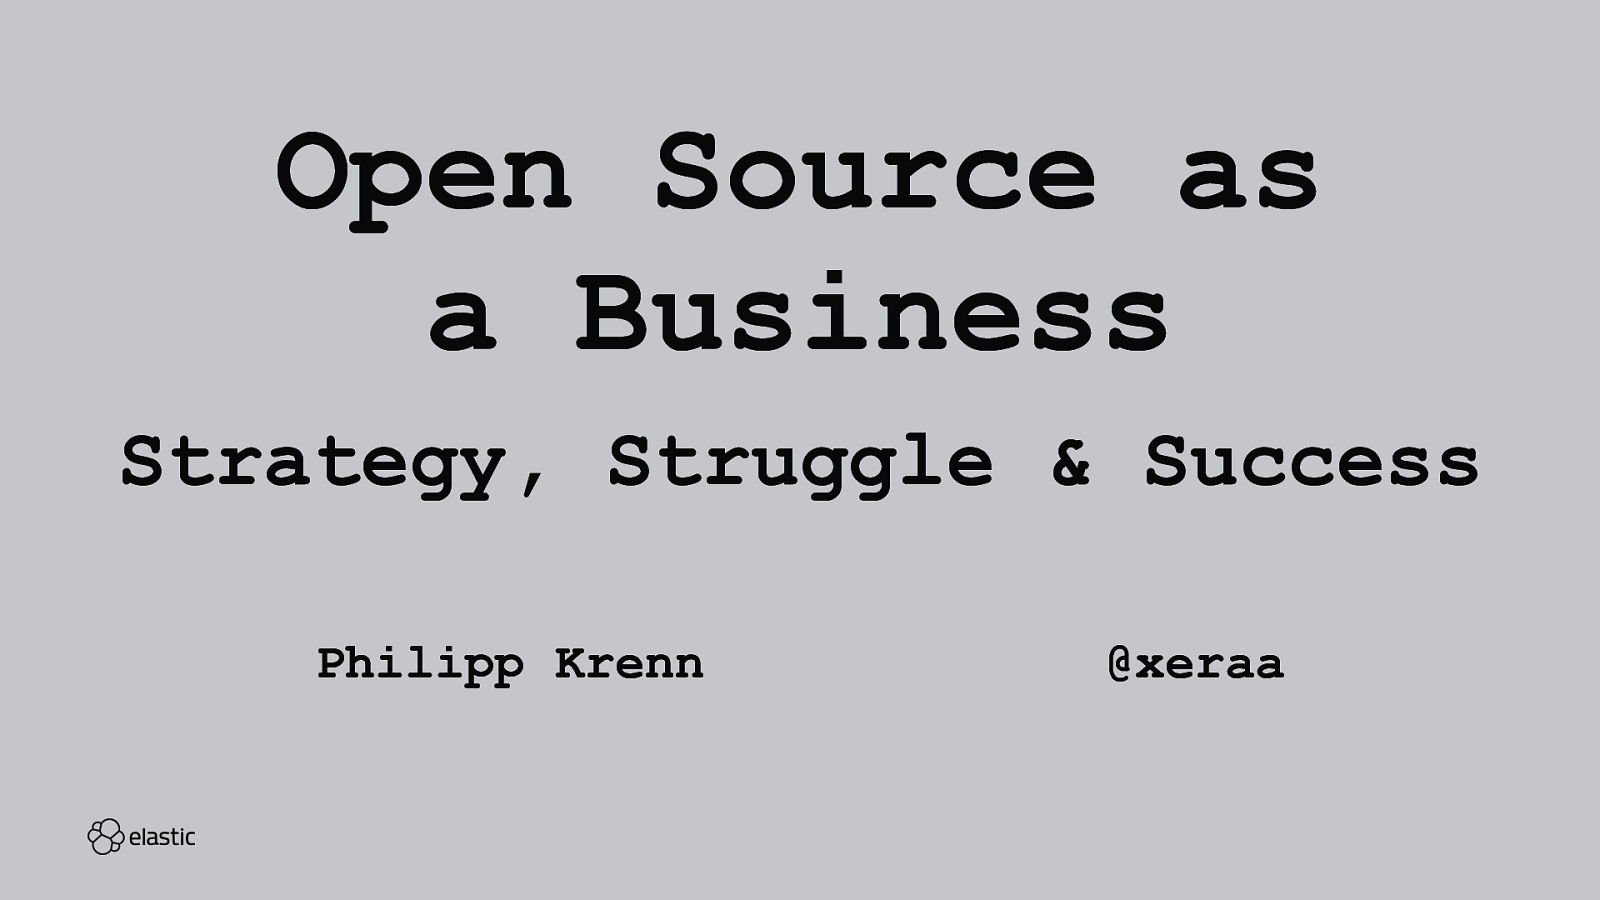 Open Source as a Business